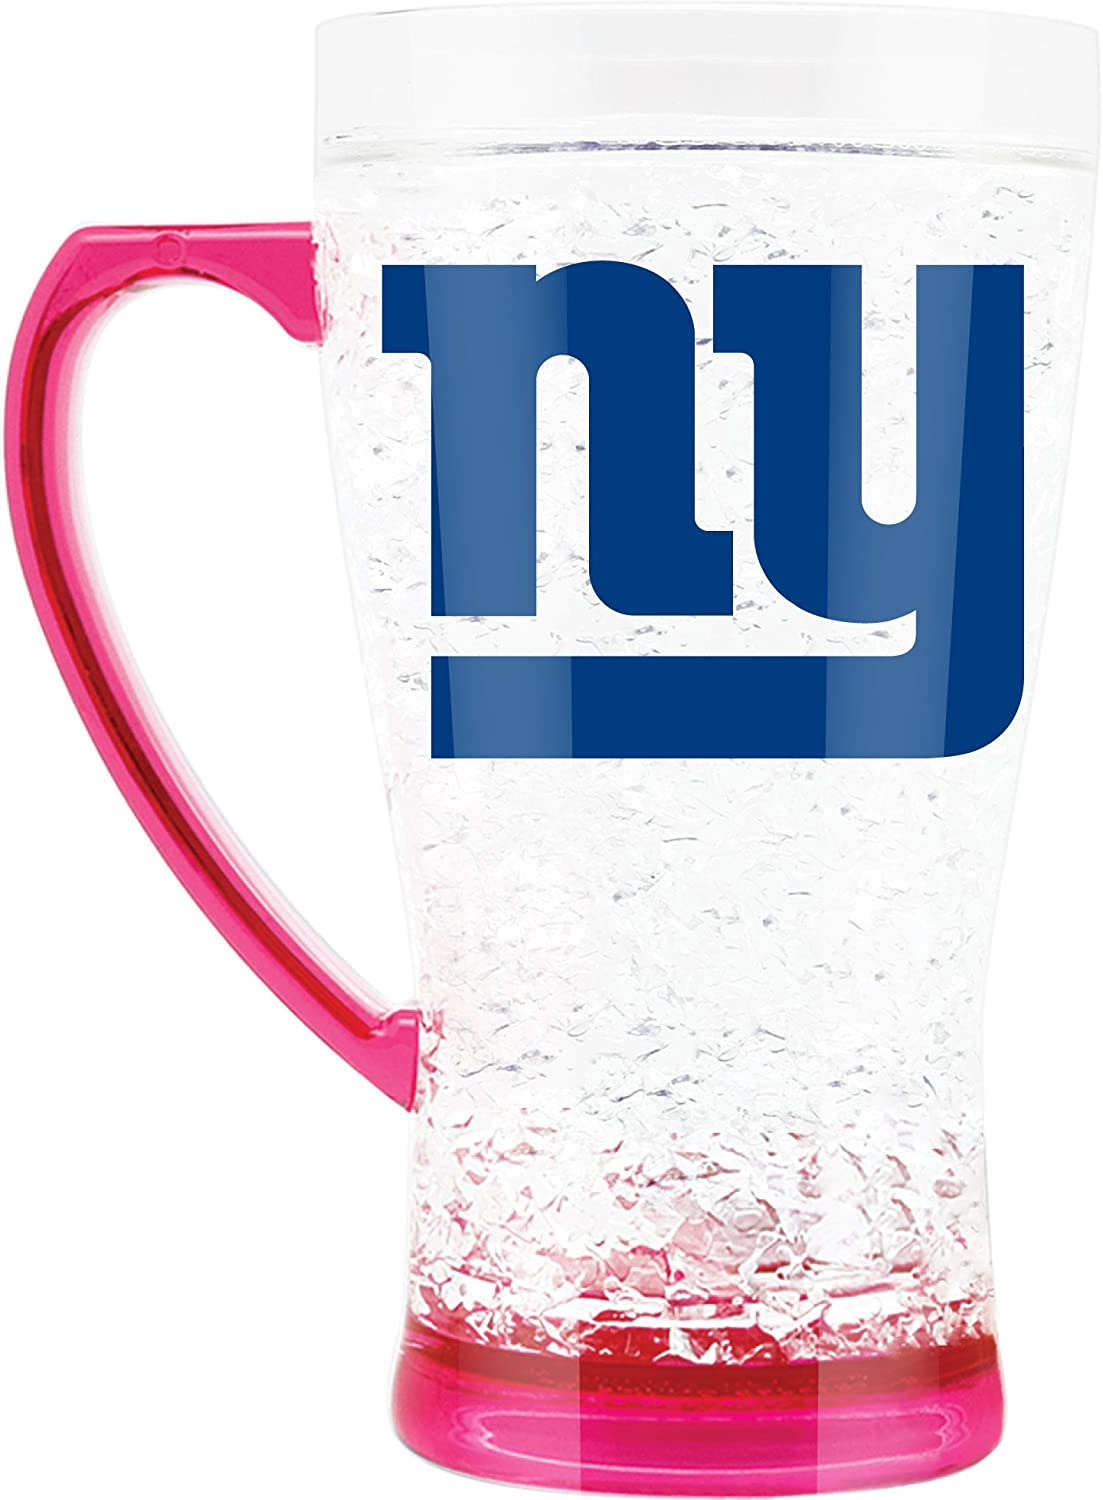 NFL New York Giants 16oz Crystal Freezer Flared Mug with Pink Base and Handle